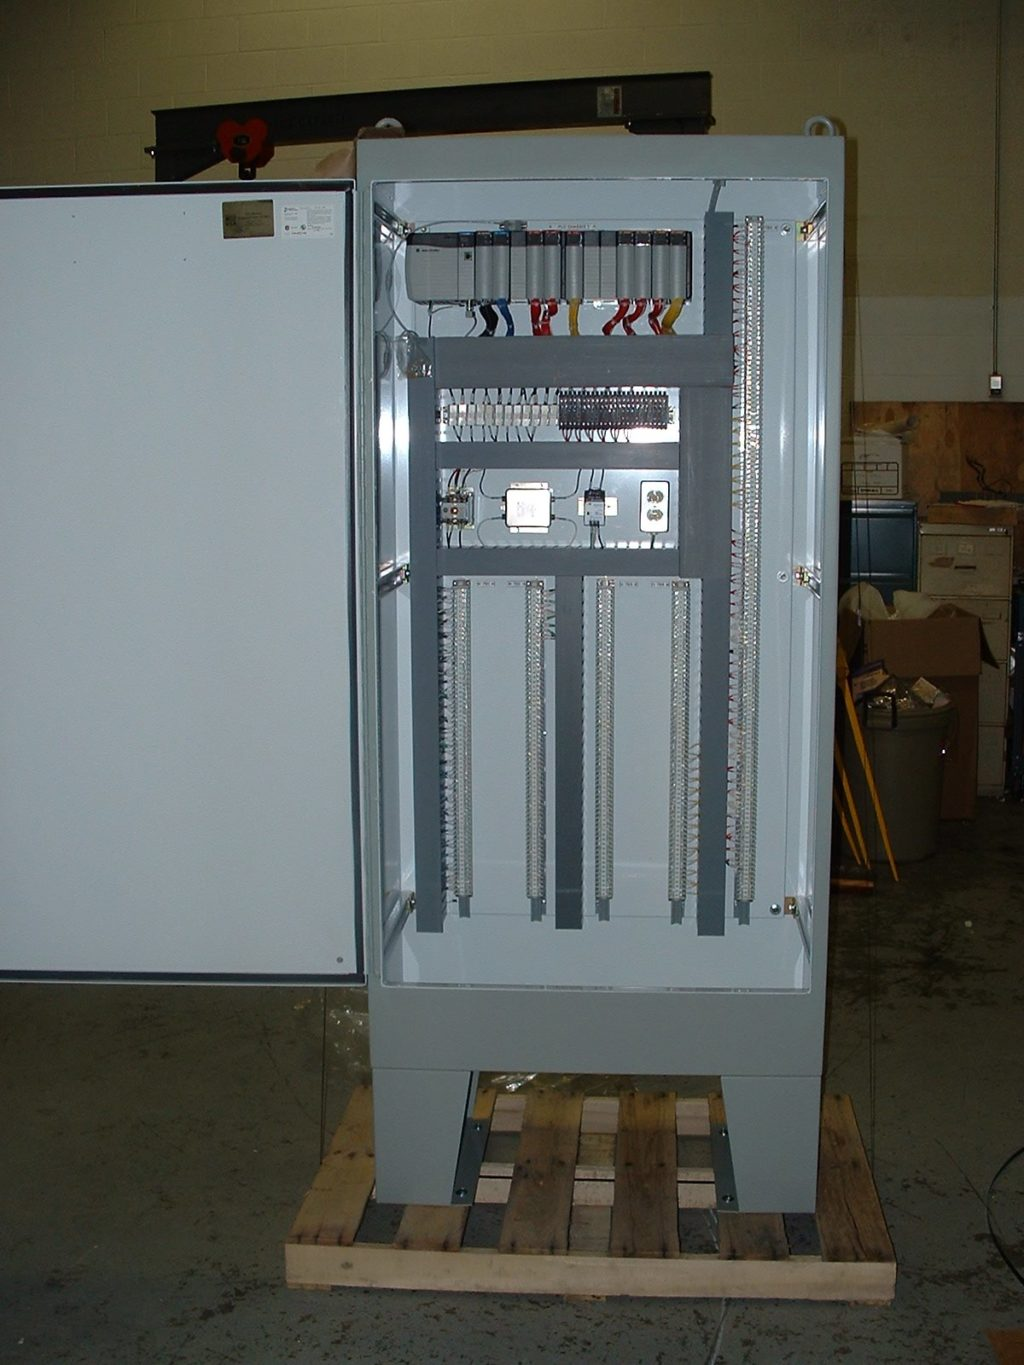 Control Panel for Bulk Material Handling Equipment